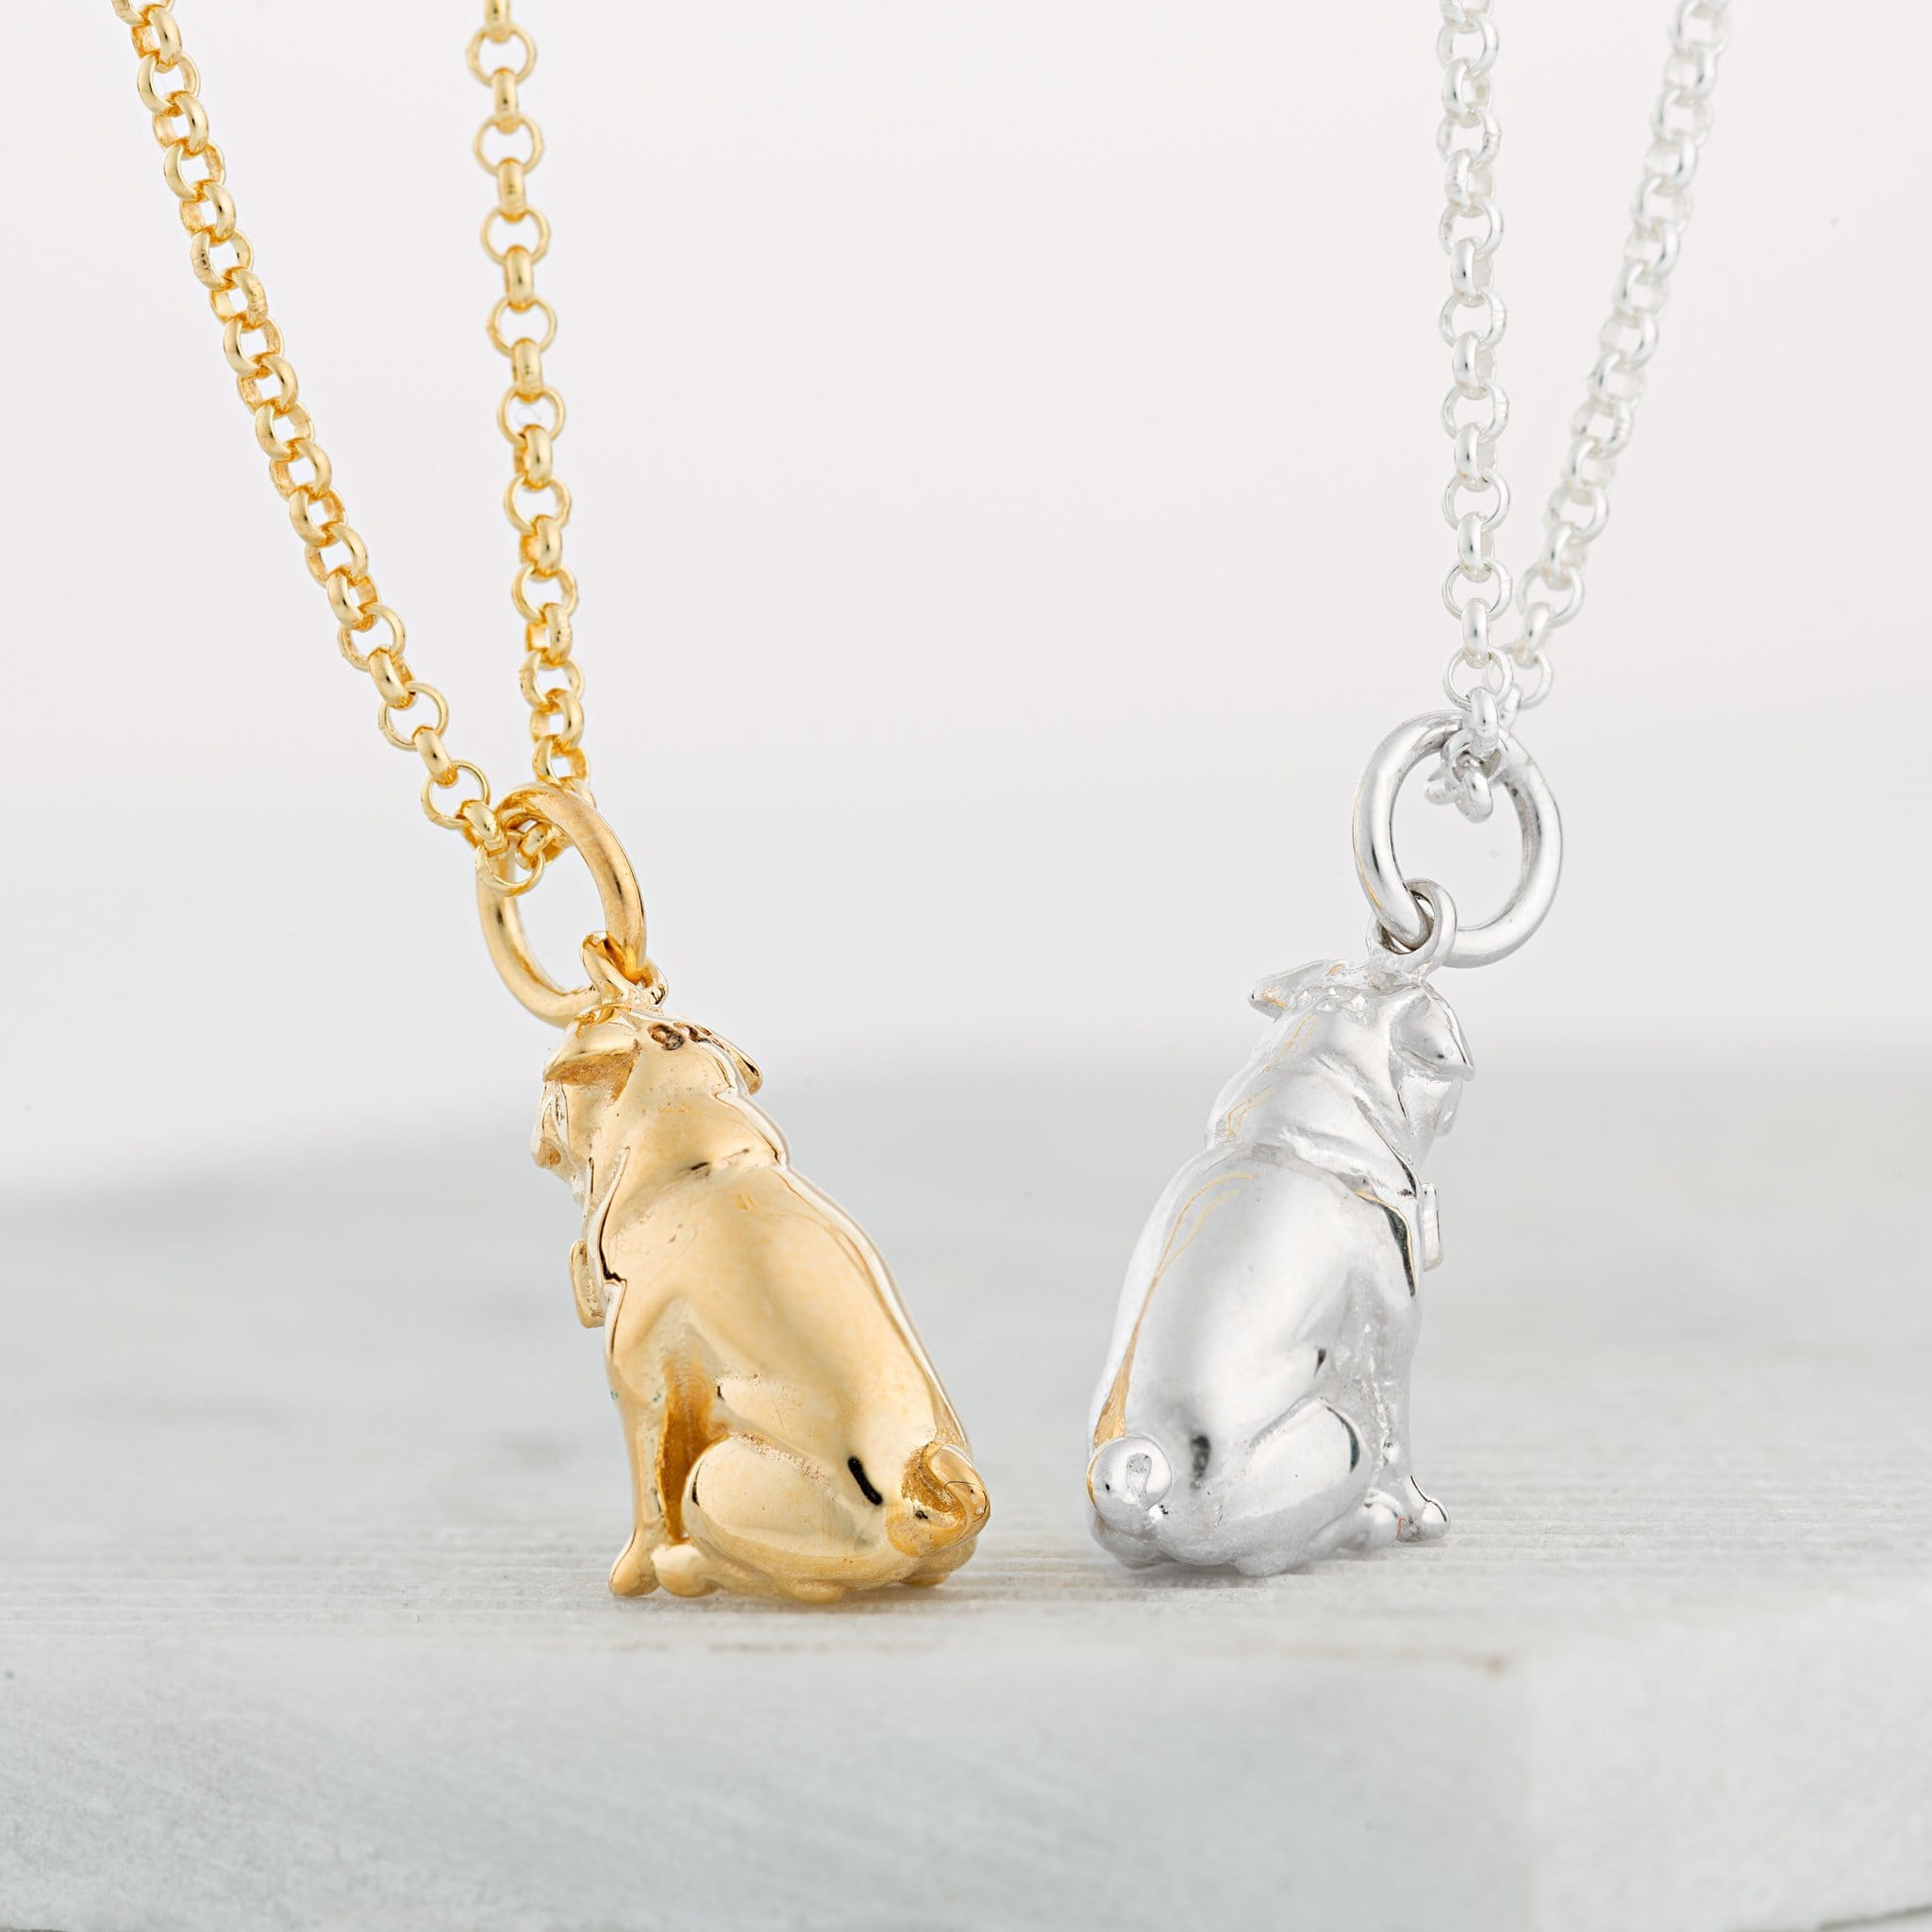 Personalised Gold Plated Pug Necklace - Lily Charmed